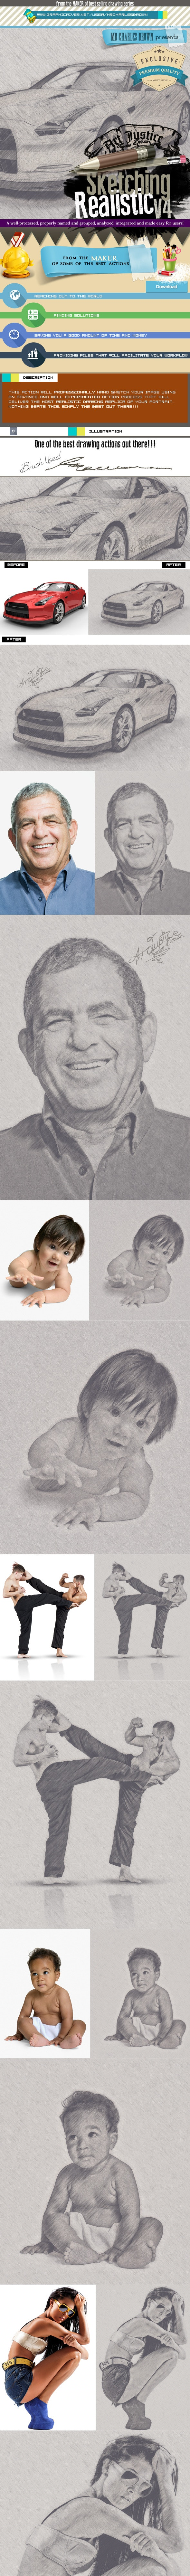 Art Justice Realistic Sketching Vol. 4 - Photo Effects Actions